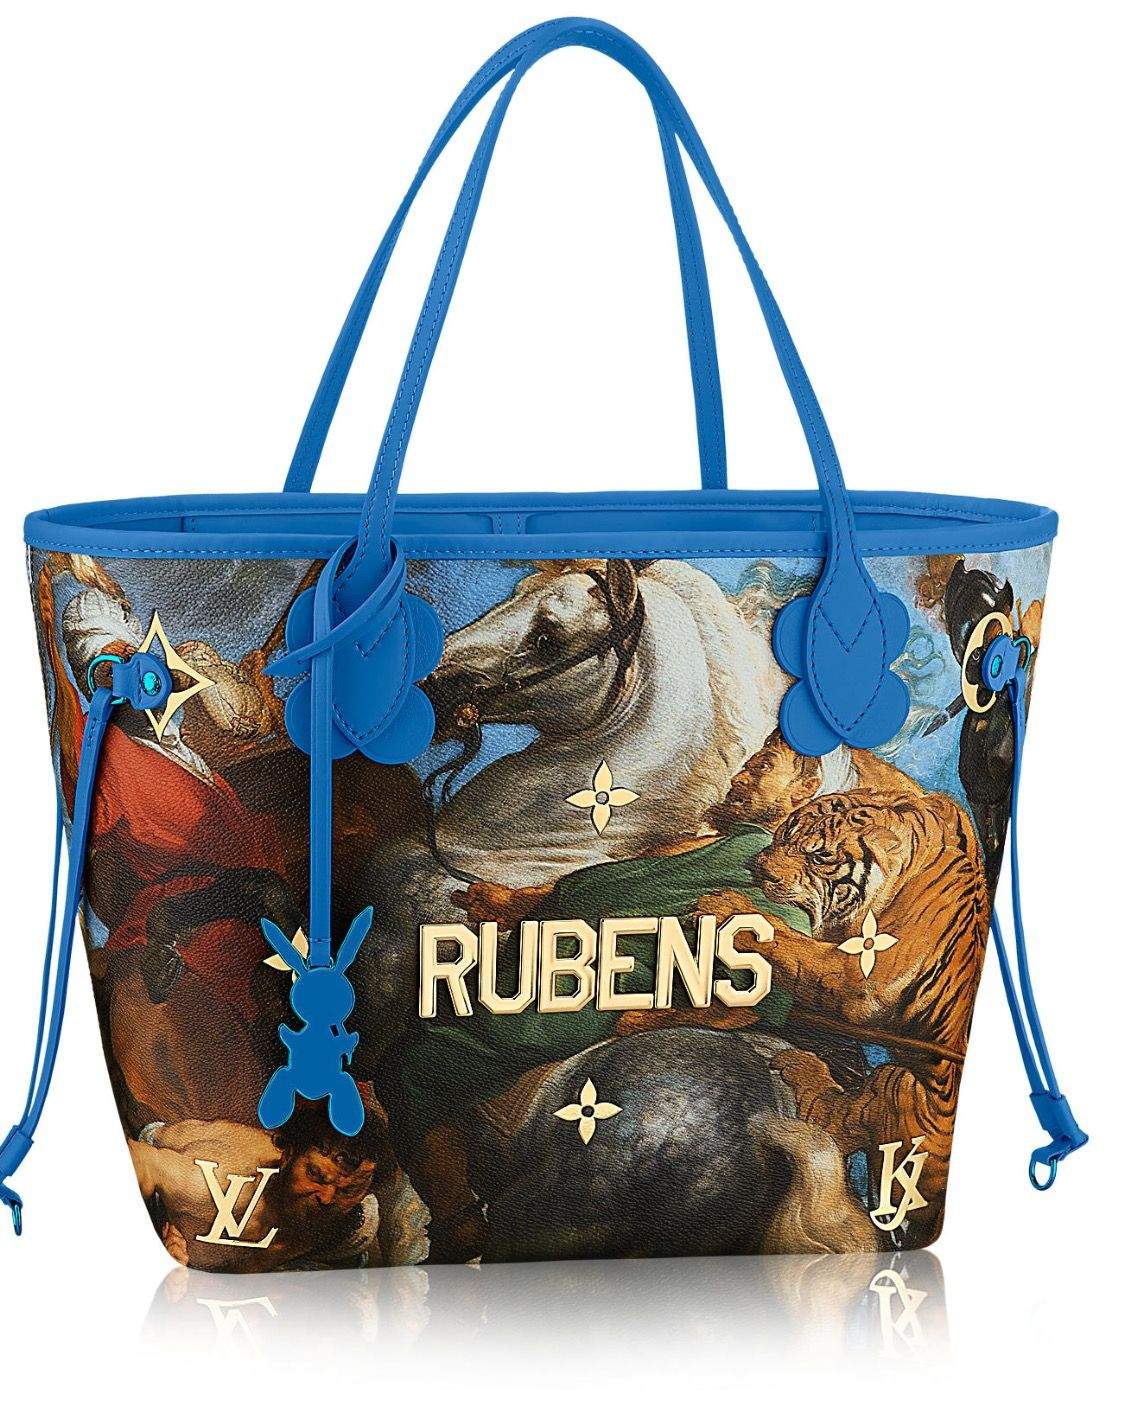 ee7254ed5226 Jeff Koons X Louis Vuitton Bags Featuring The  Mona Lisa